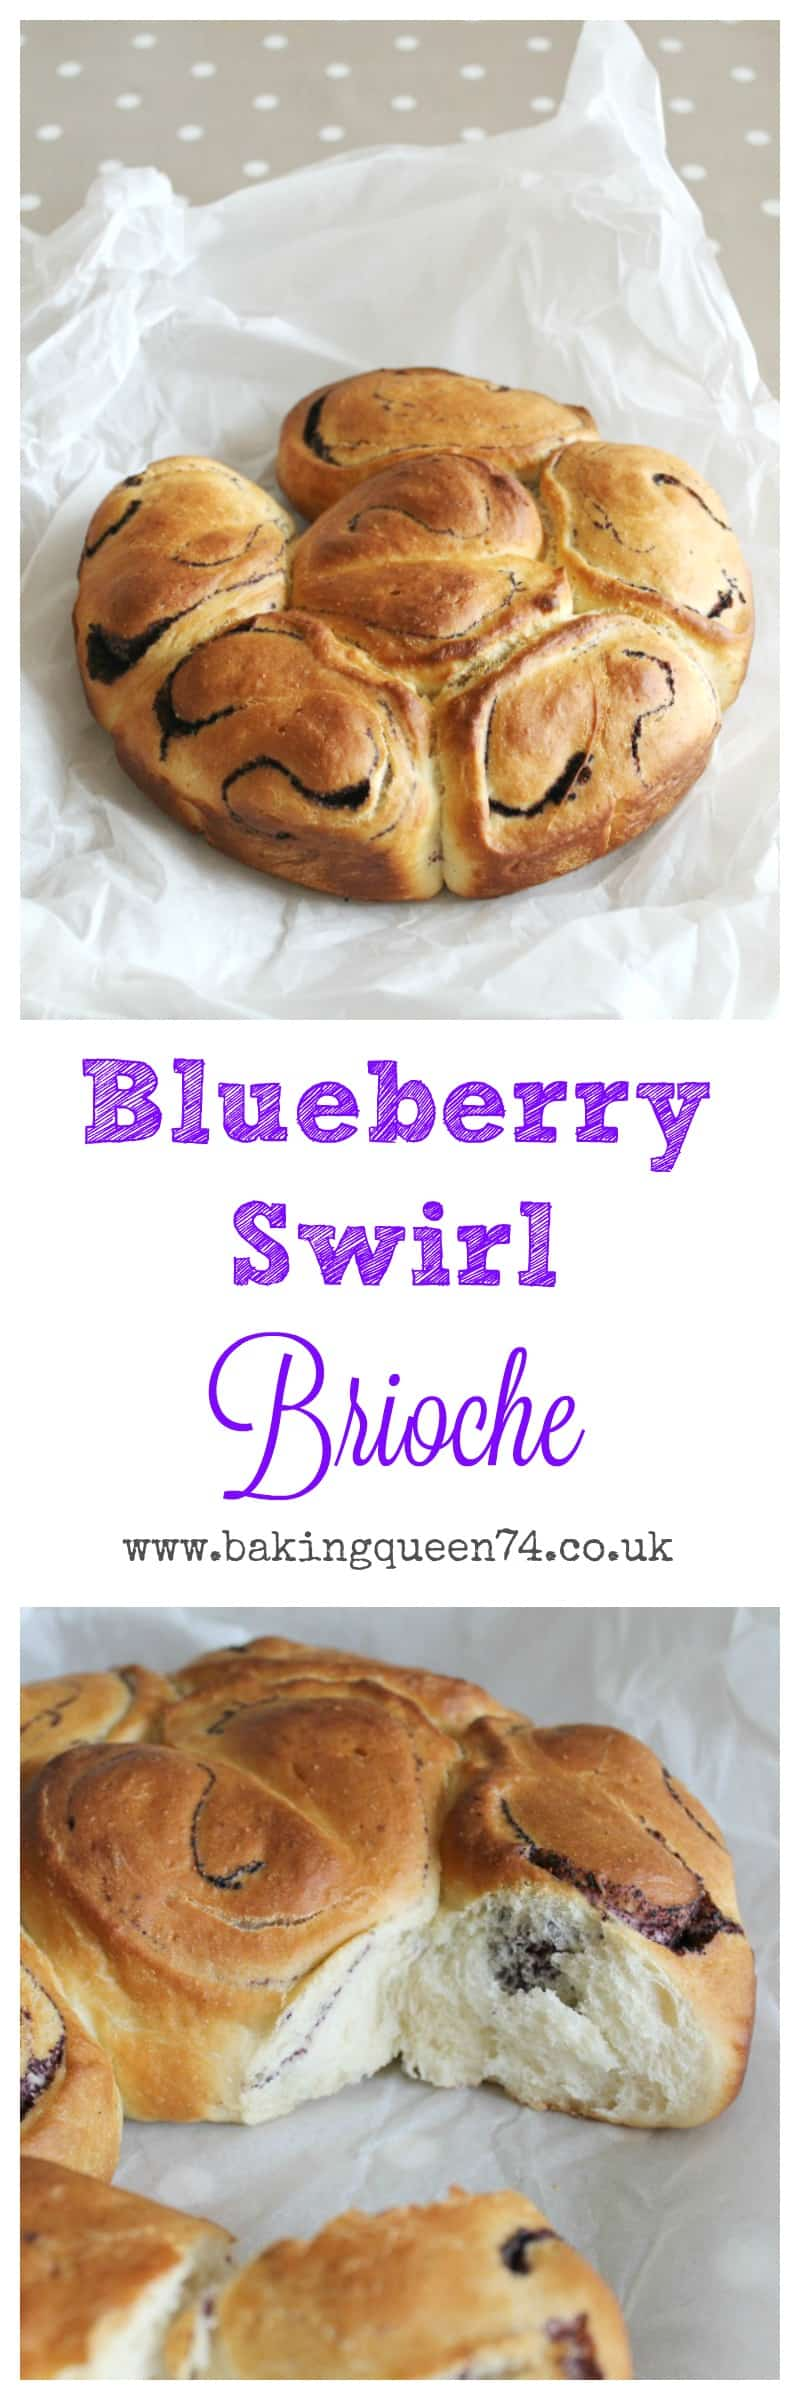 Blueberry Swirl Brioche